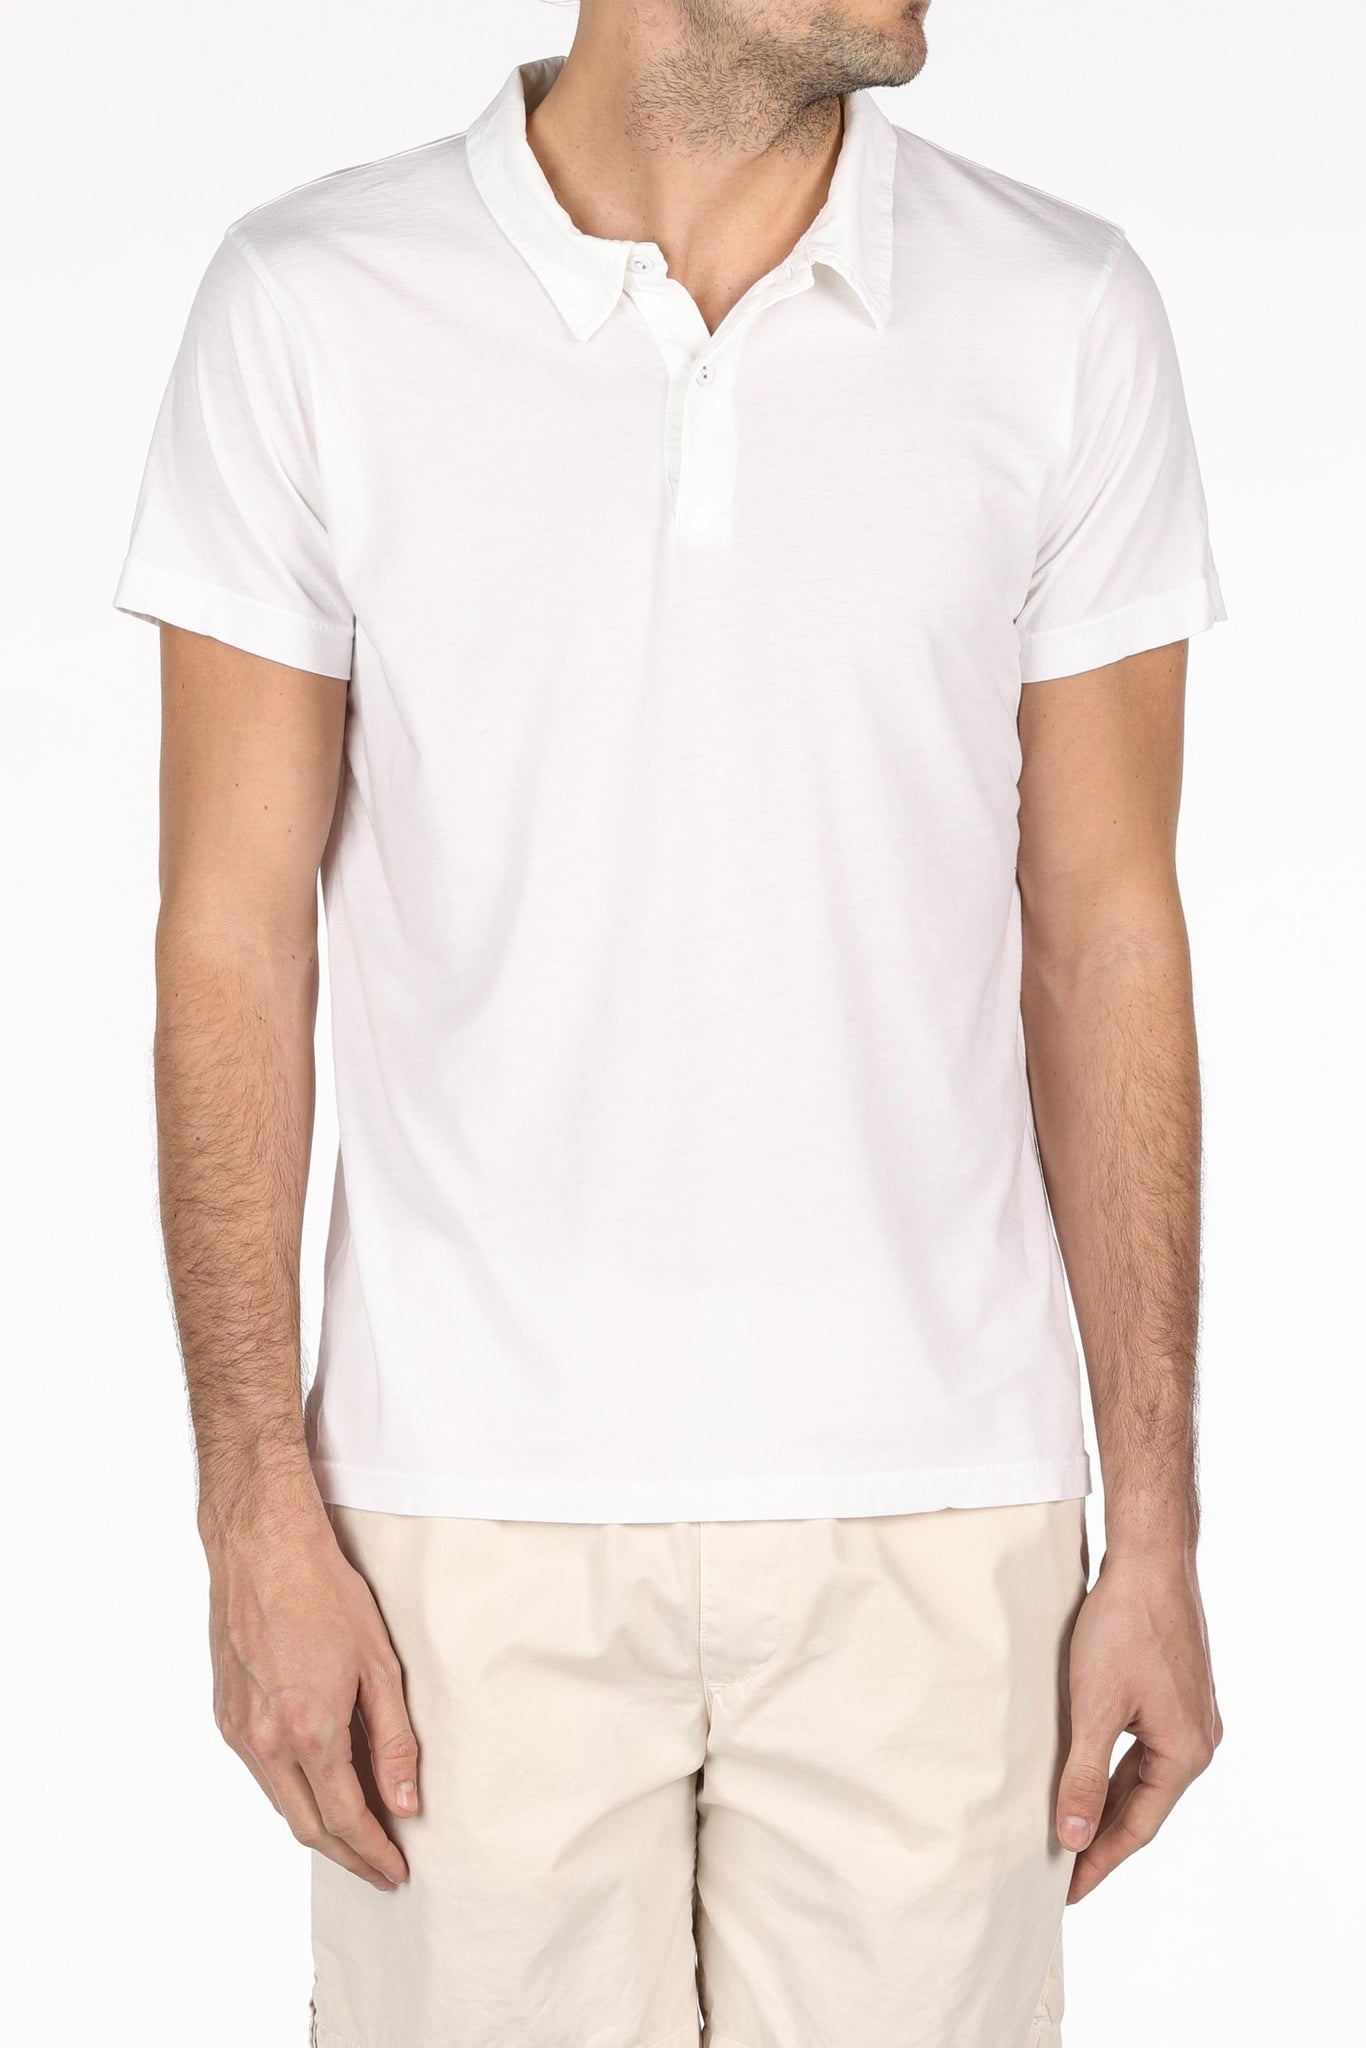 Save Khaki United Supima Jersey Polo - White